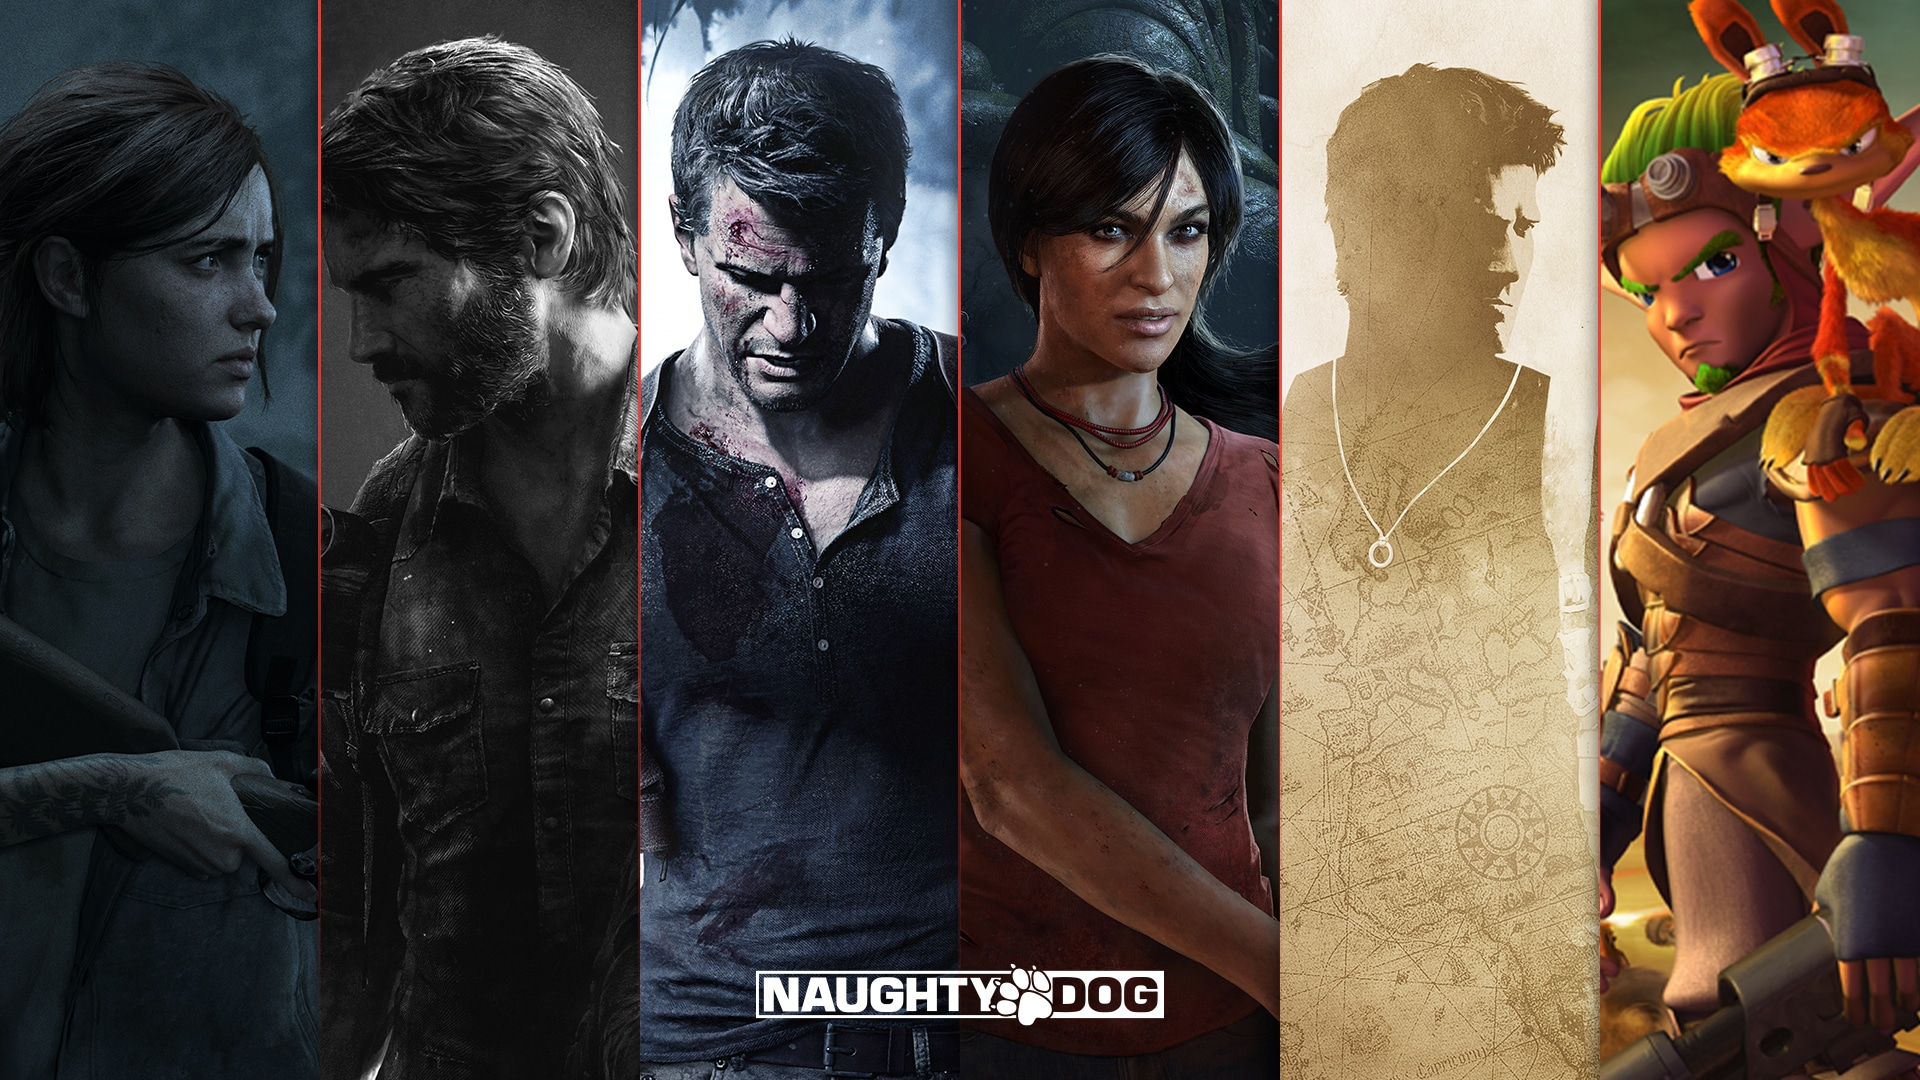 Naughty Dog Teases Possible New Uncharted Game. - 9to5game